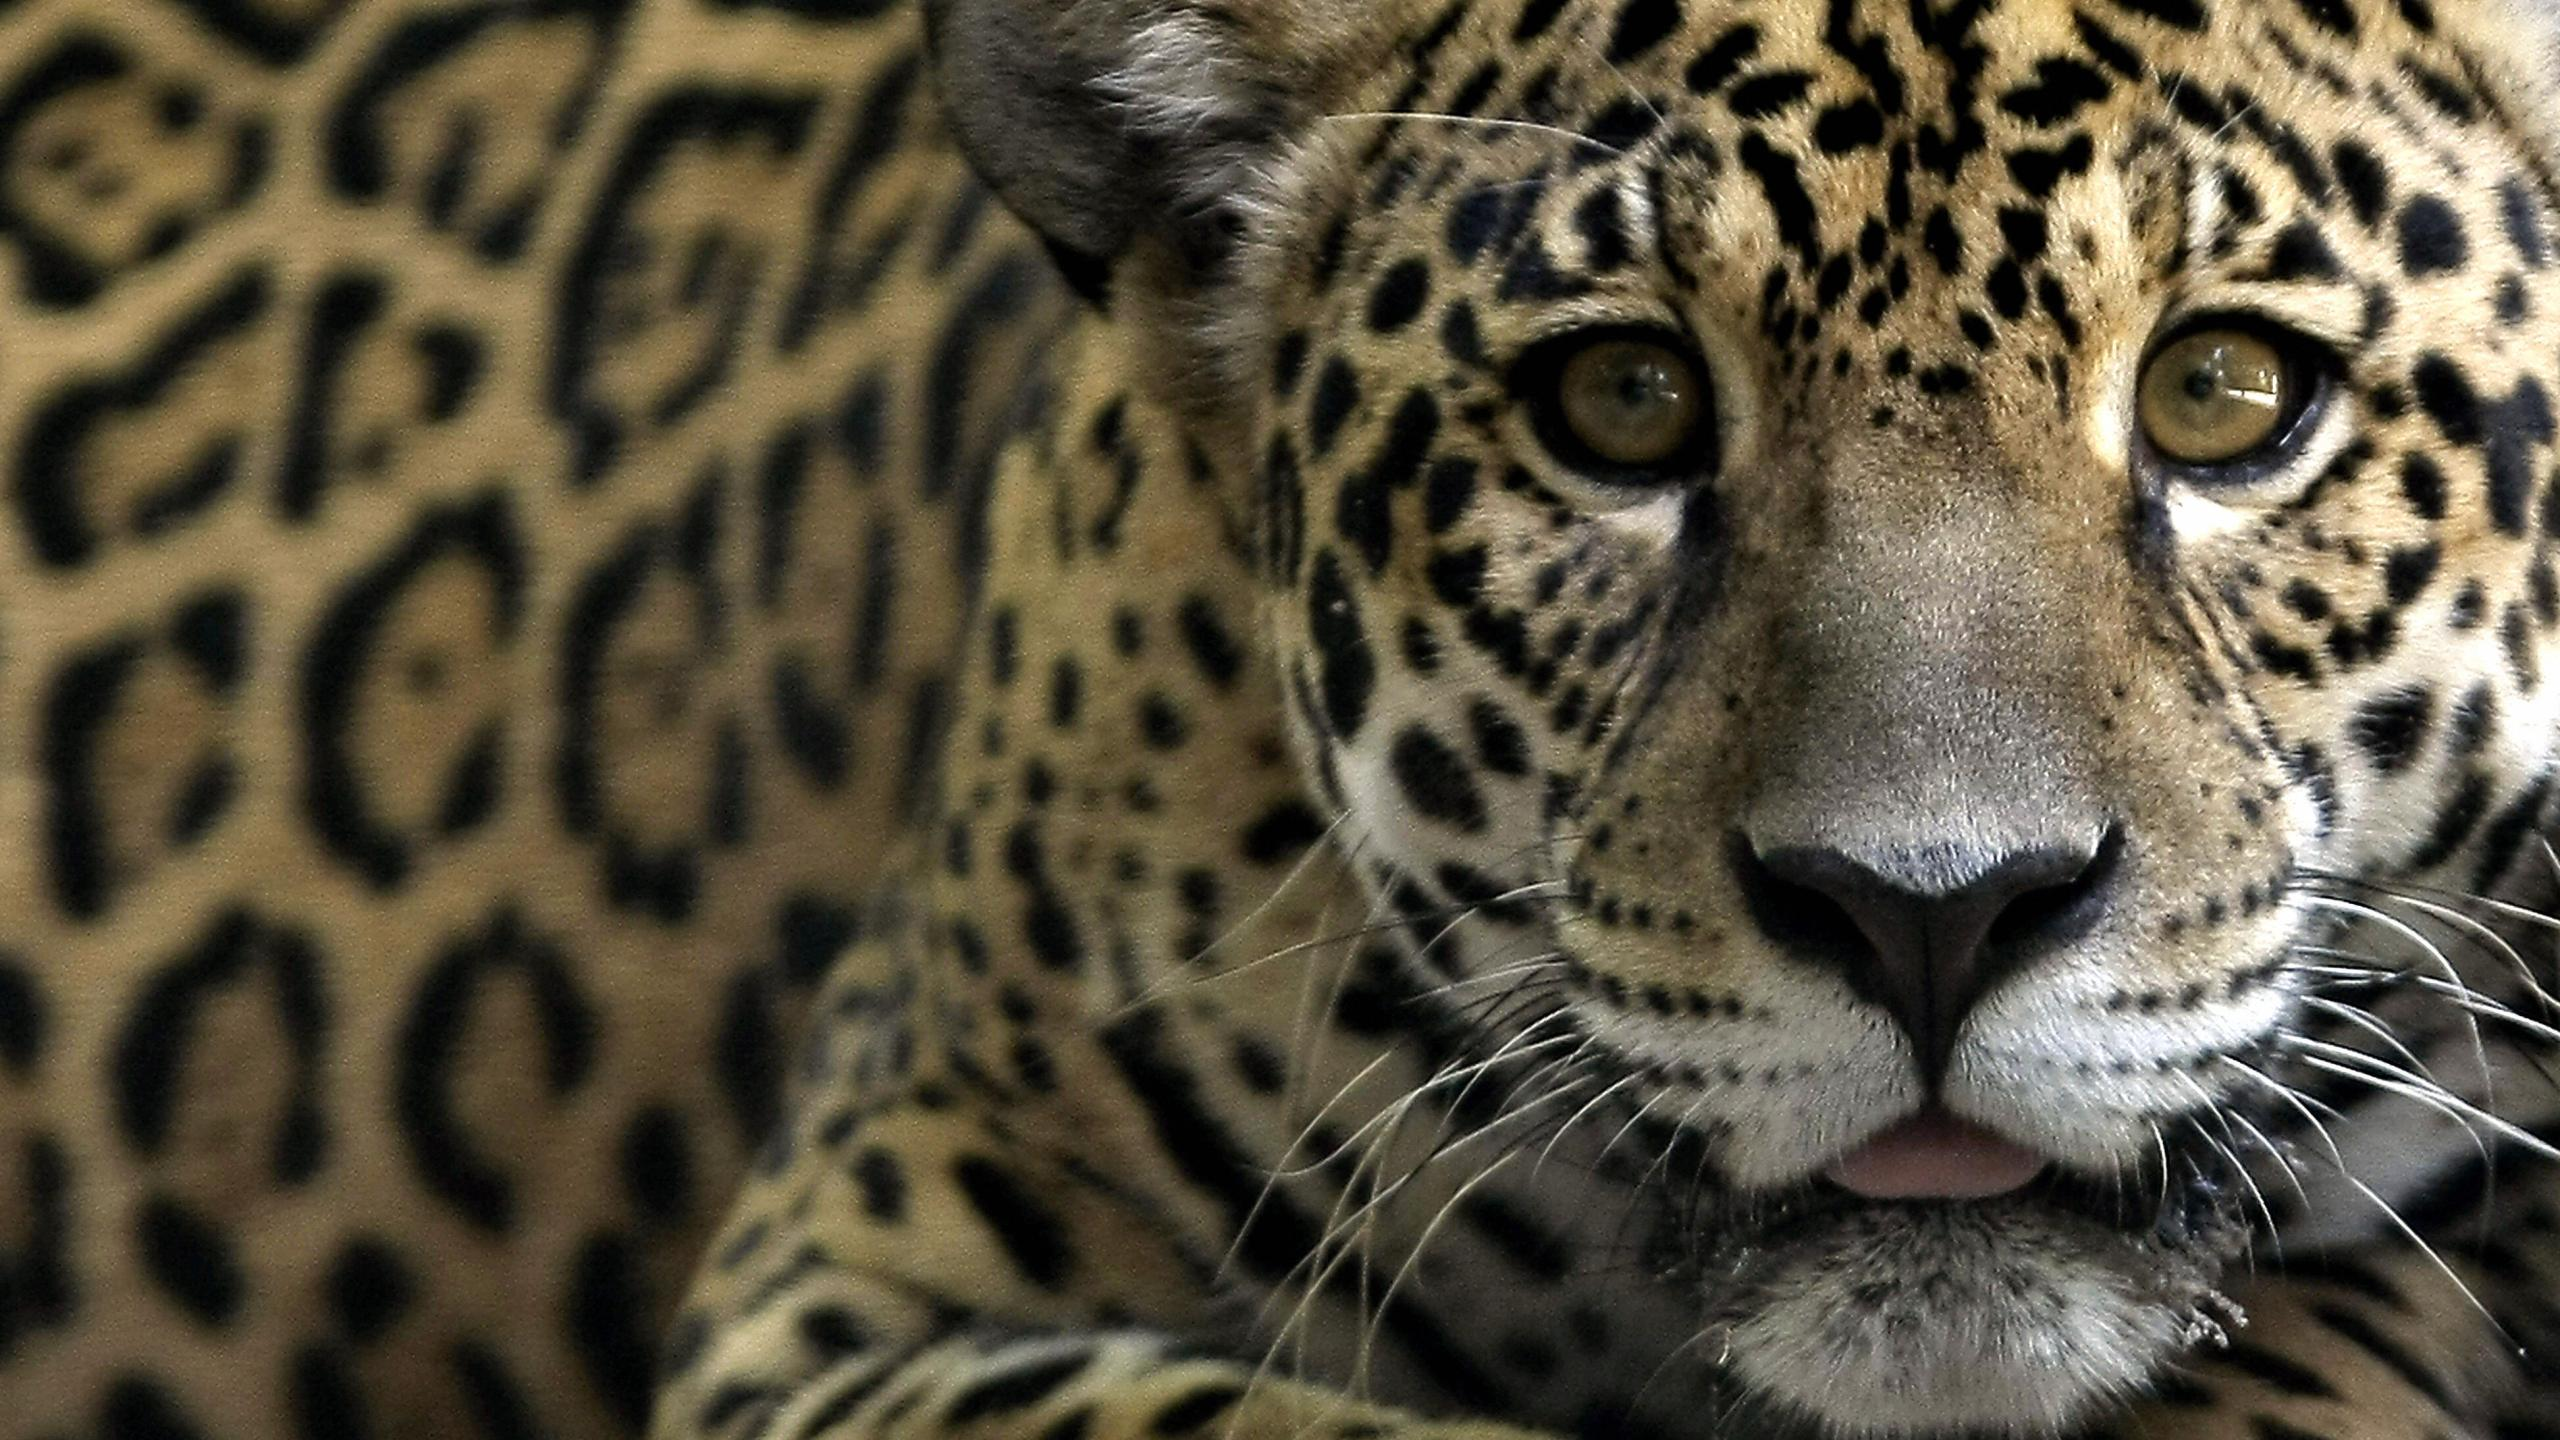 A jaguar, one of the endangered native species of Amazonian fauna, lounges at a Brazilian natural reserve on Oct. 2, 2008. (Credit: Mauricio Lima/AFP/Getty Images)